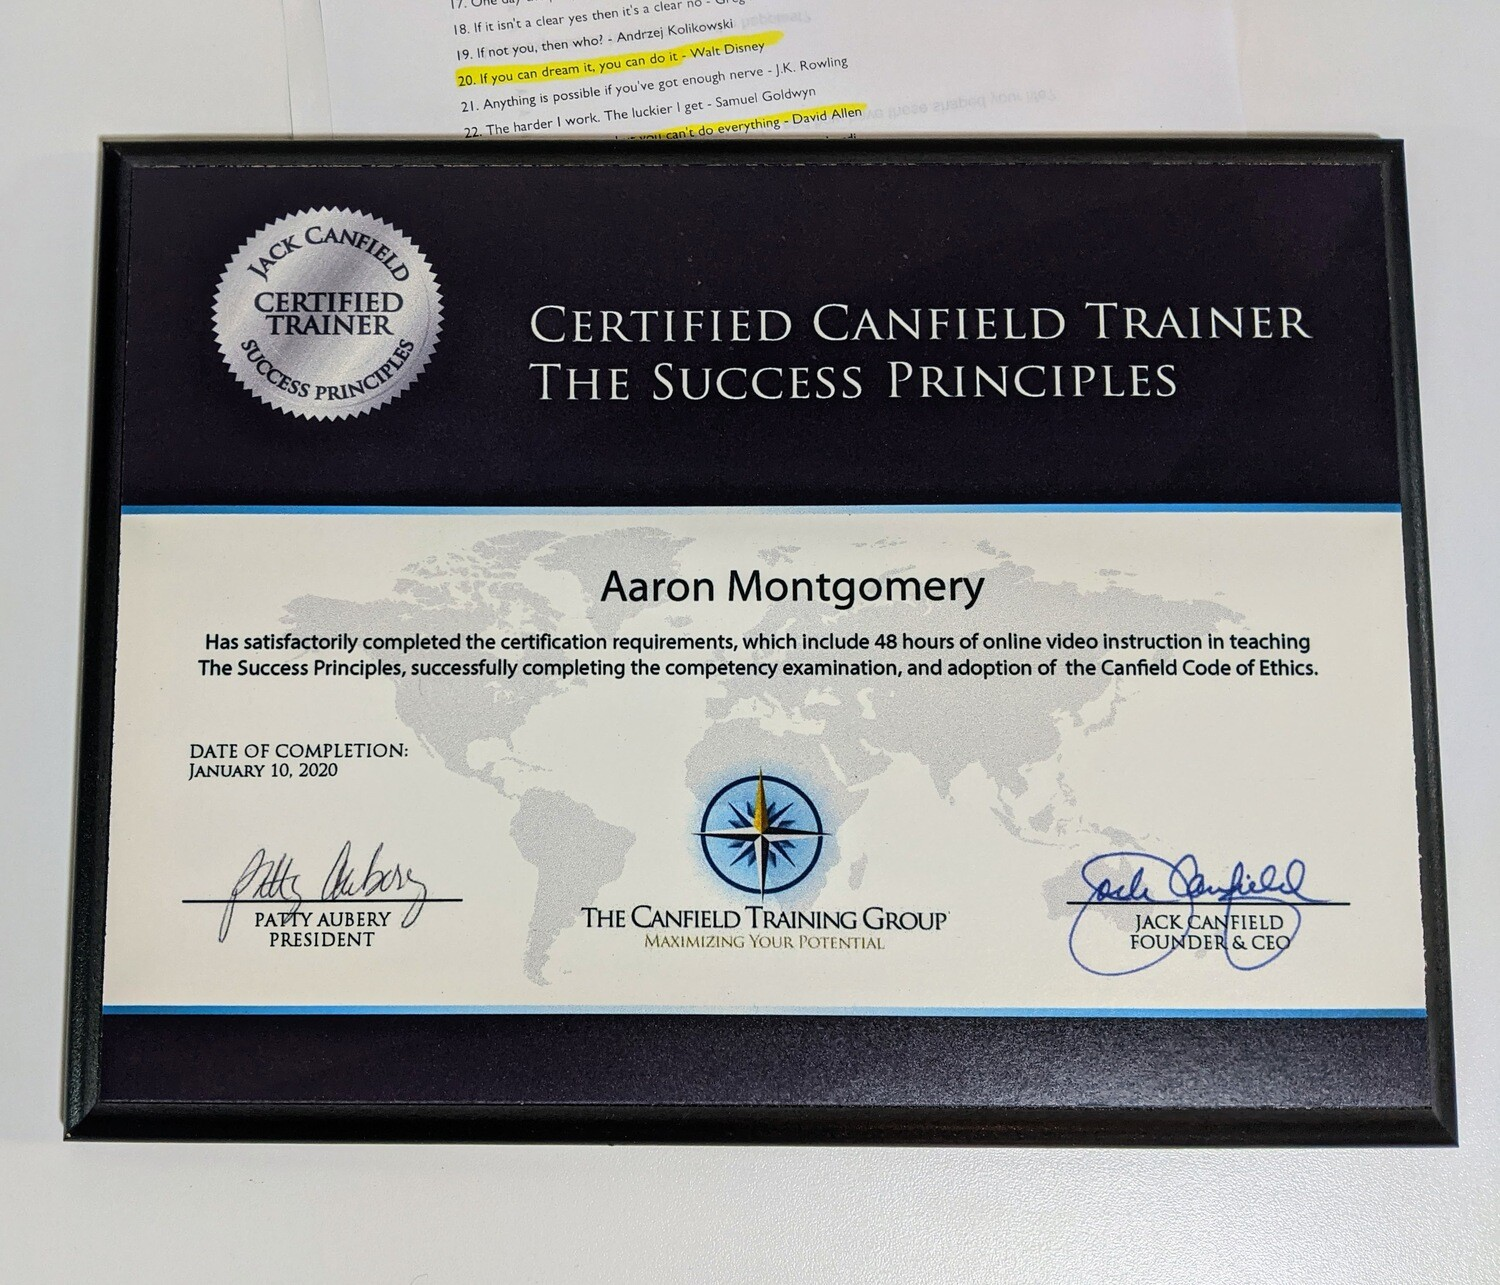 Certified Canfield Trainer - The Success Principles - Plaque with Black Edge